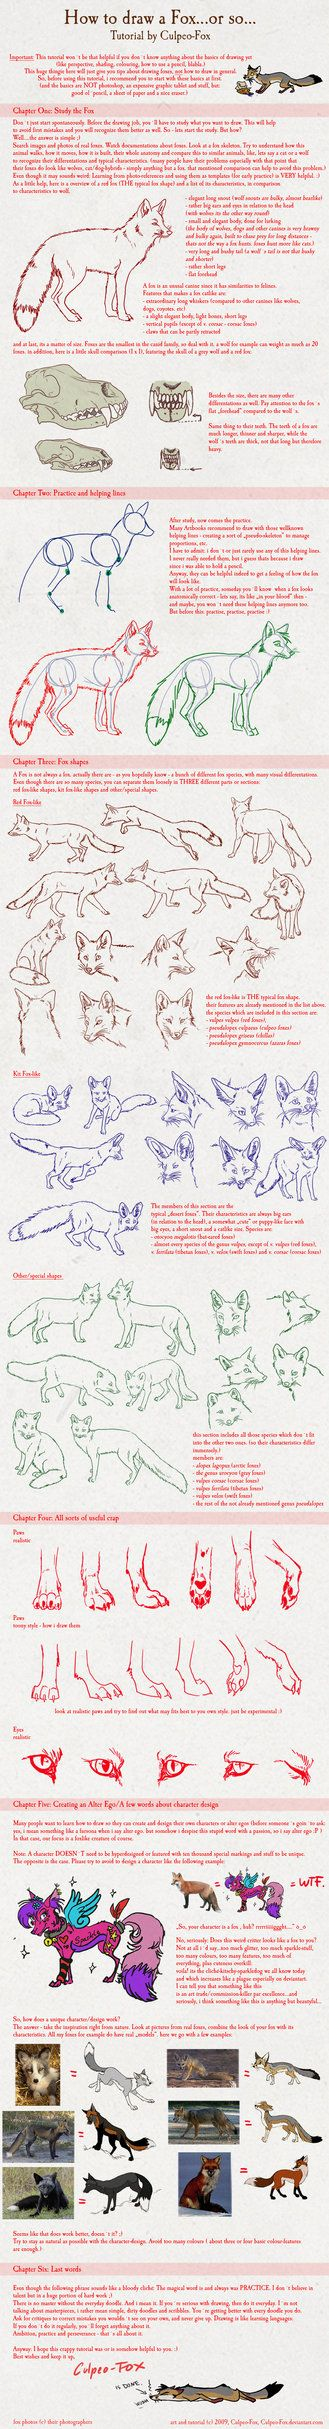 Fox drawing tutorial by Culpeo-Fox via deviantart   ★ || CHARACTER DESIGN REFERENCES (www.facebook.com/CharacterDesignReferences & pinterest.com/characterdesigh) • Love Character Design? Join the Character Design Challenge (link→ www.facebook.com/groups/CharacterDesignChallenge) Share your unique vision of a theme every month, promote your art and make new friends in a community of over 25.000 artists! || ★